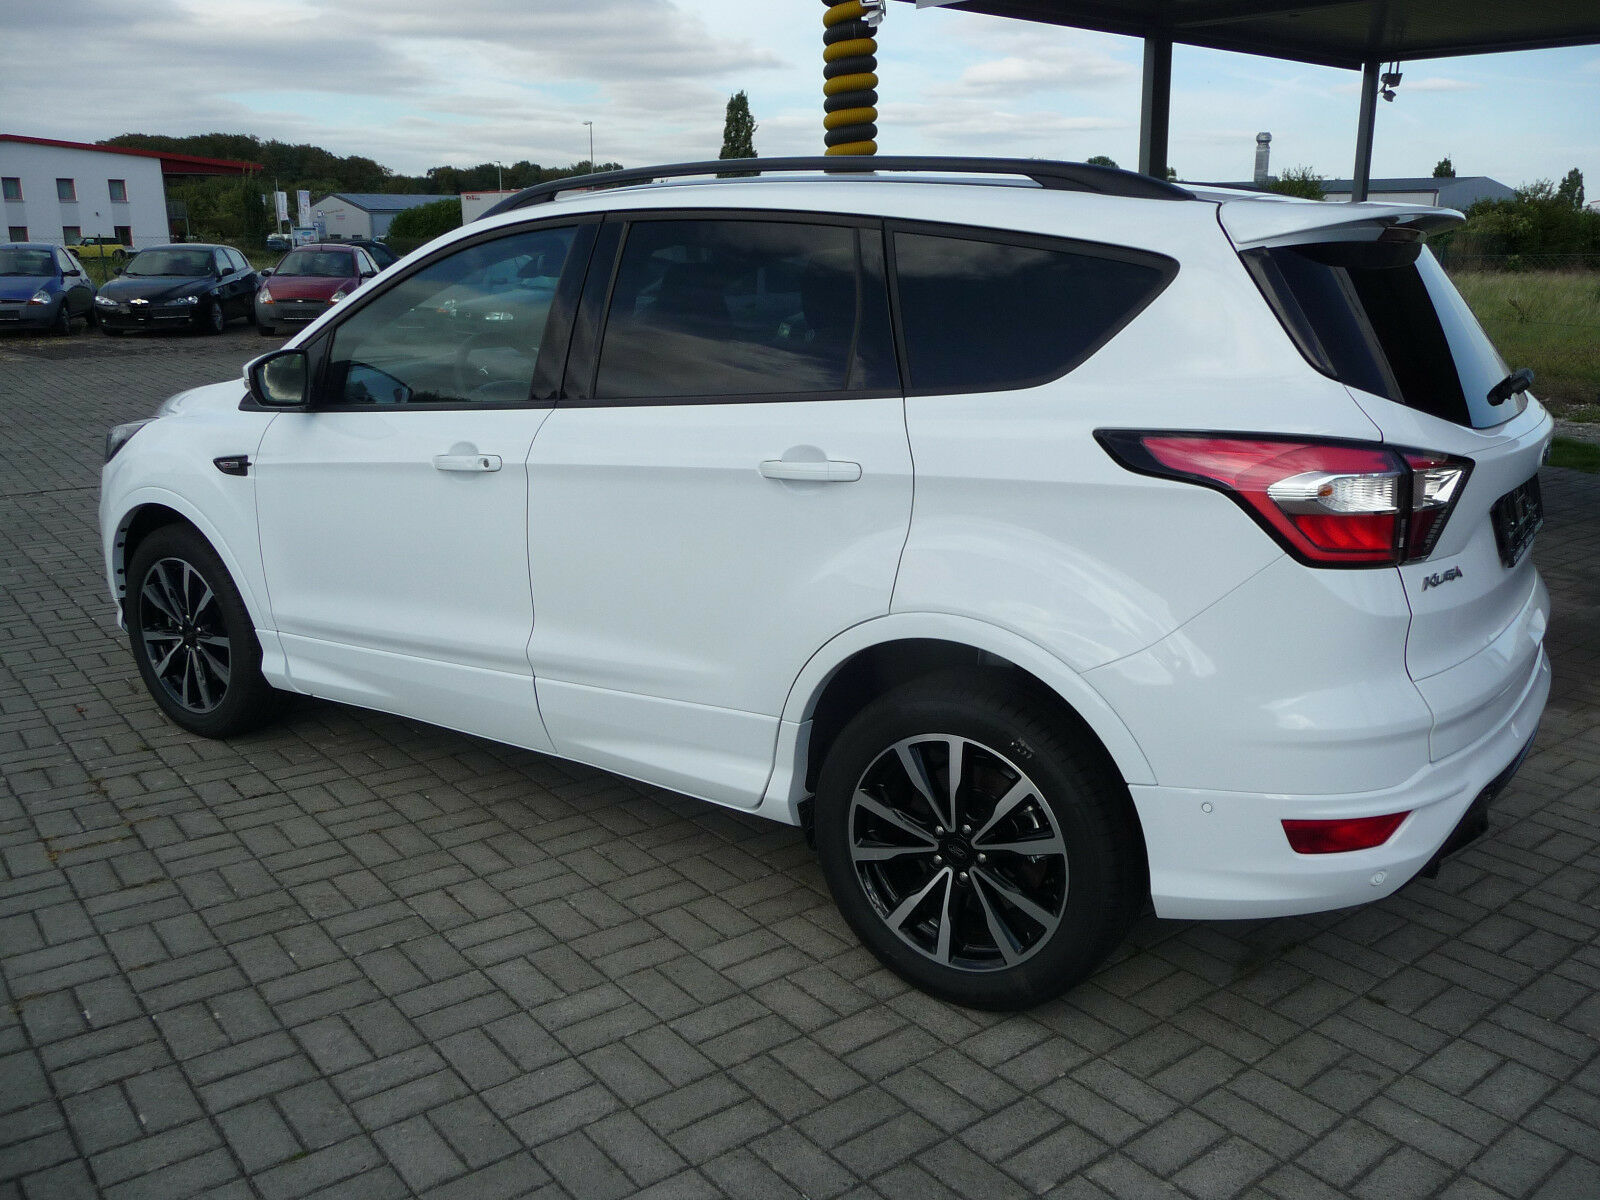 ford kuga 2 0 tdci st line navi parkautomatik teilled. Black Bedroom Furniture Sets. Home Design Ideas